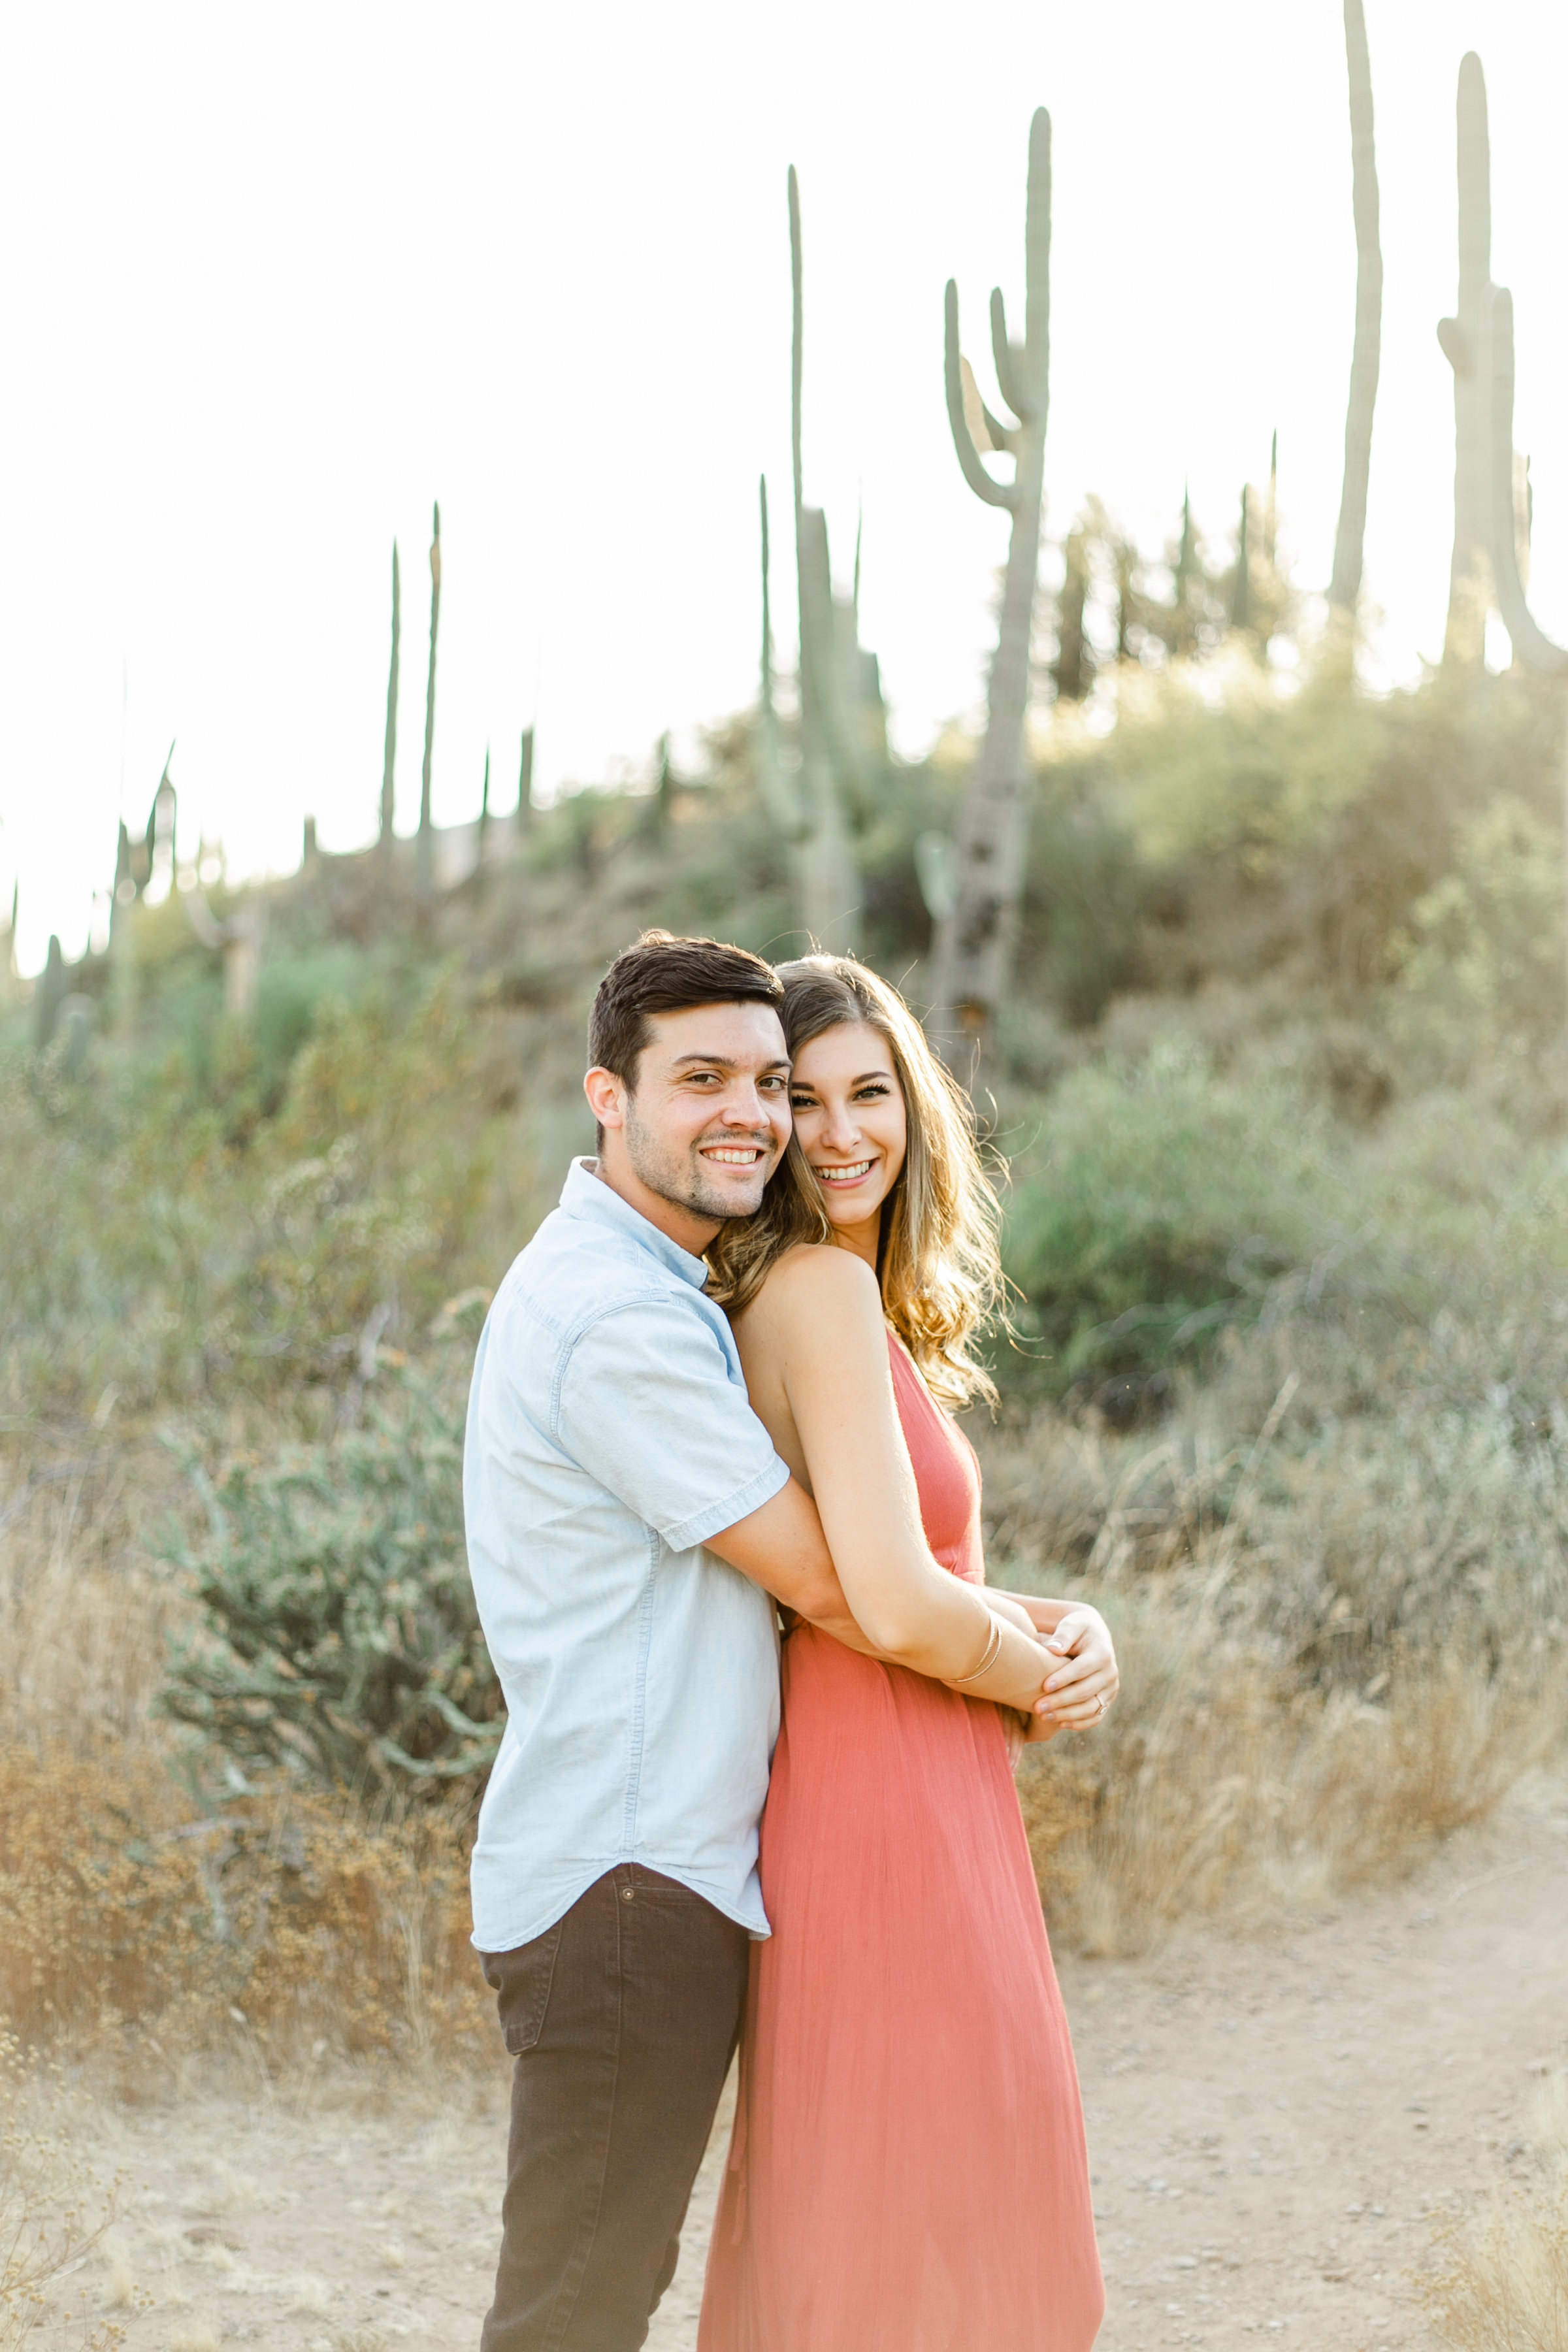 Karlie Colleen Photography - Arizona Desert Engagement - Brynne & Josh -100